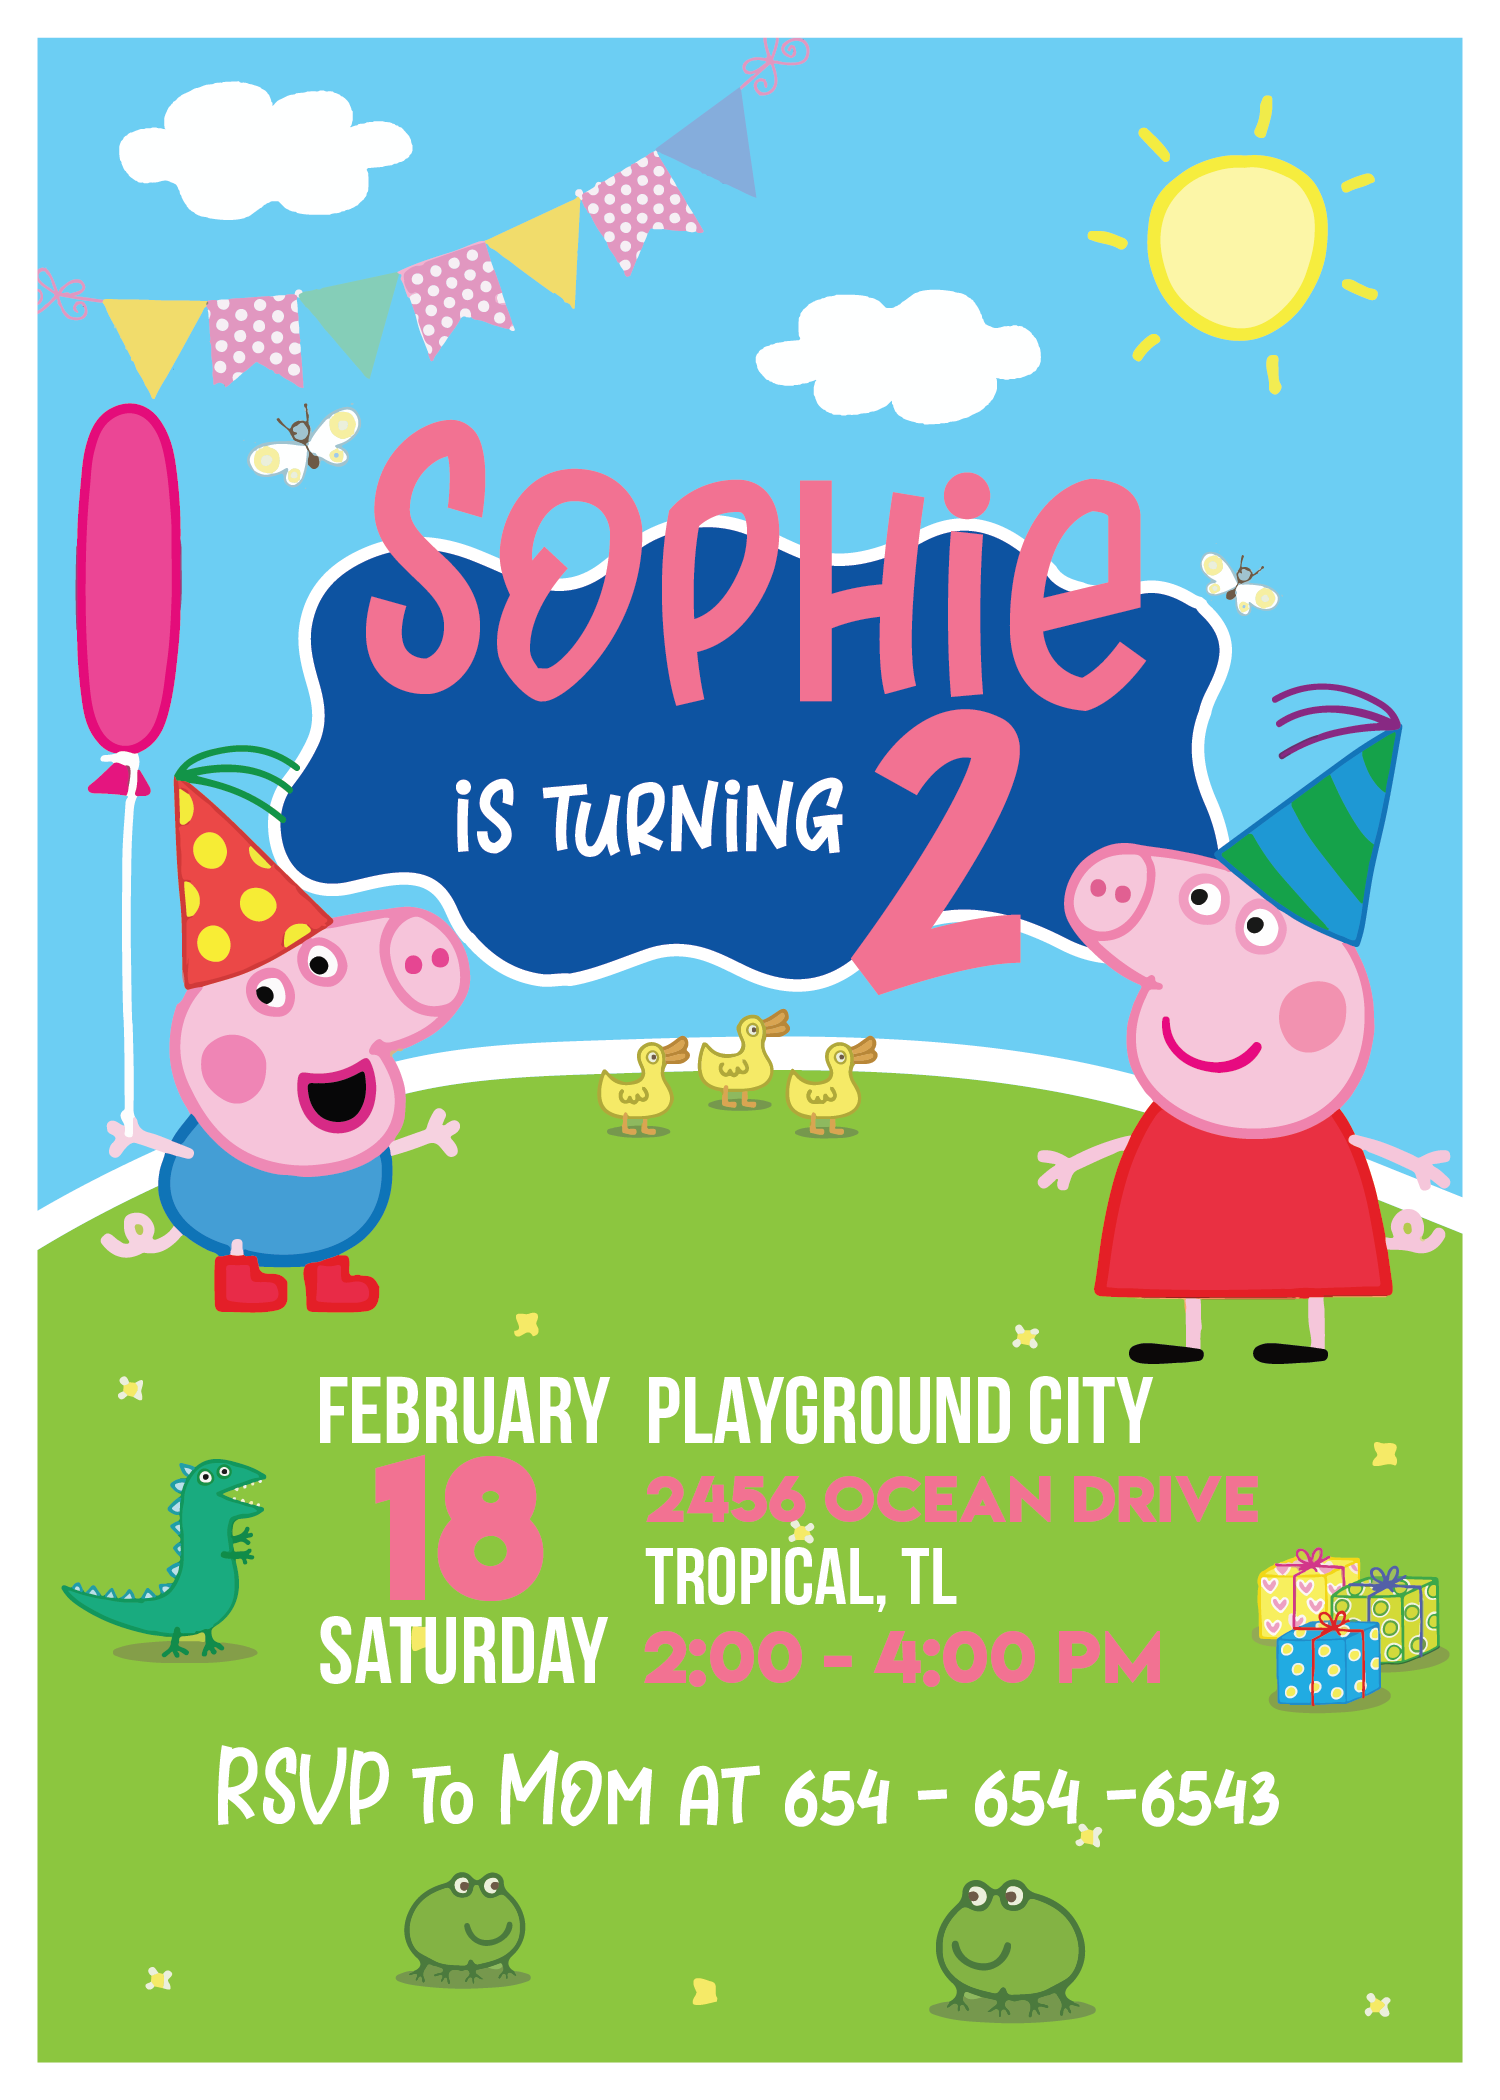 Peppa Pig Birthday Invitation Peppa Pig Party Supplies Peppa Pig Party Invites Peppa Pig Birthday Invitations Pig Birthday Invitations Peppa Pig Invitations